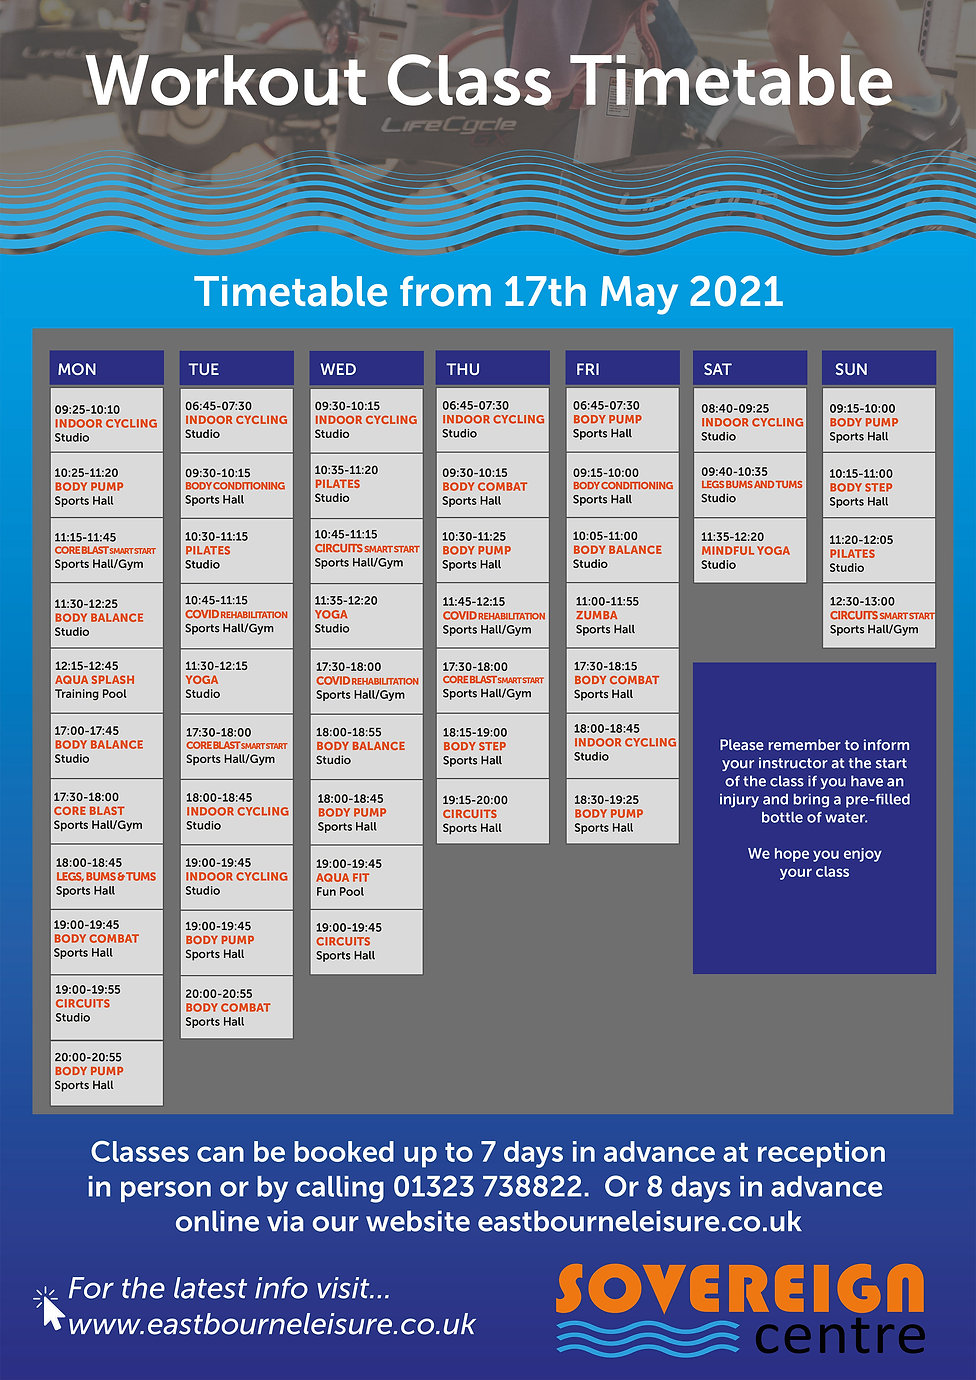 workout timetable 17th May 21.jpg